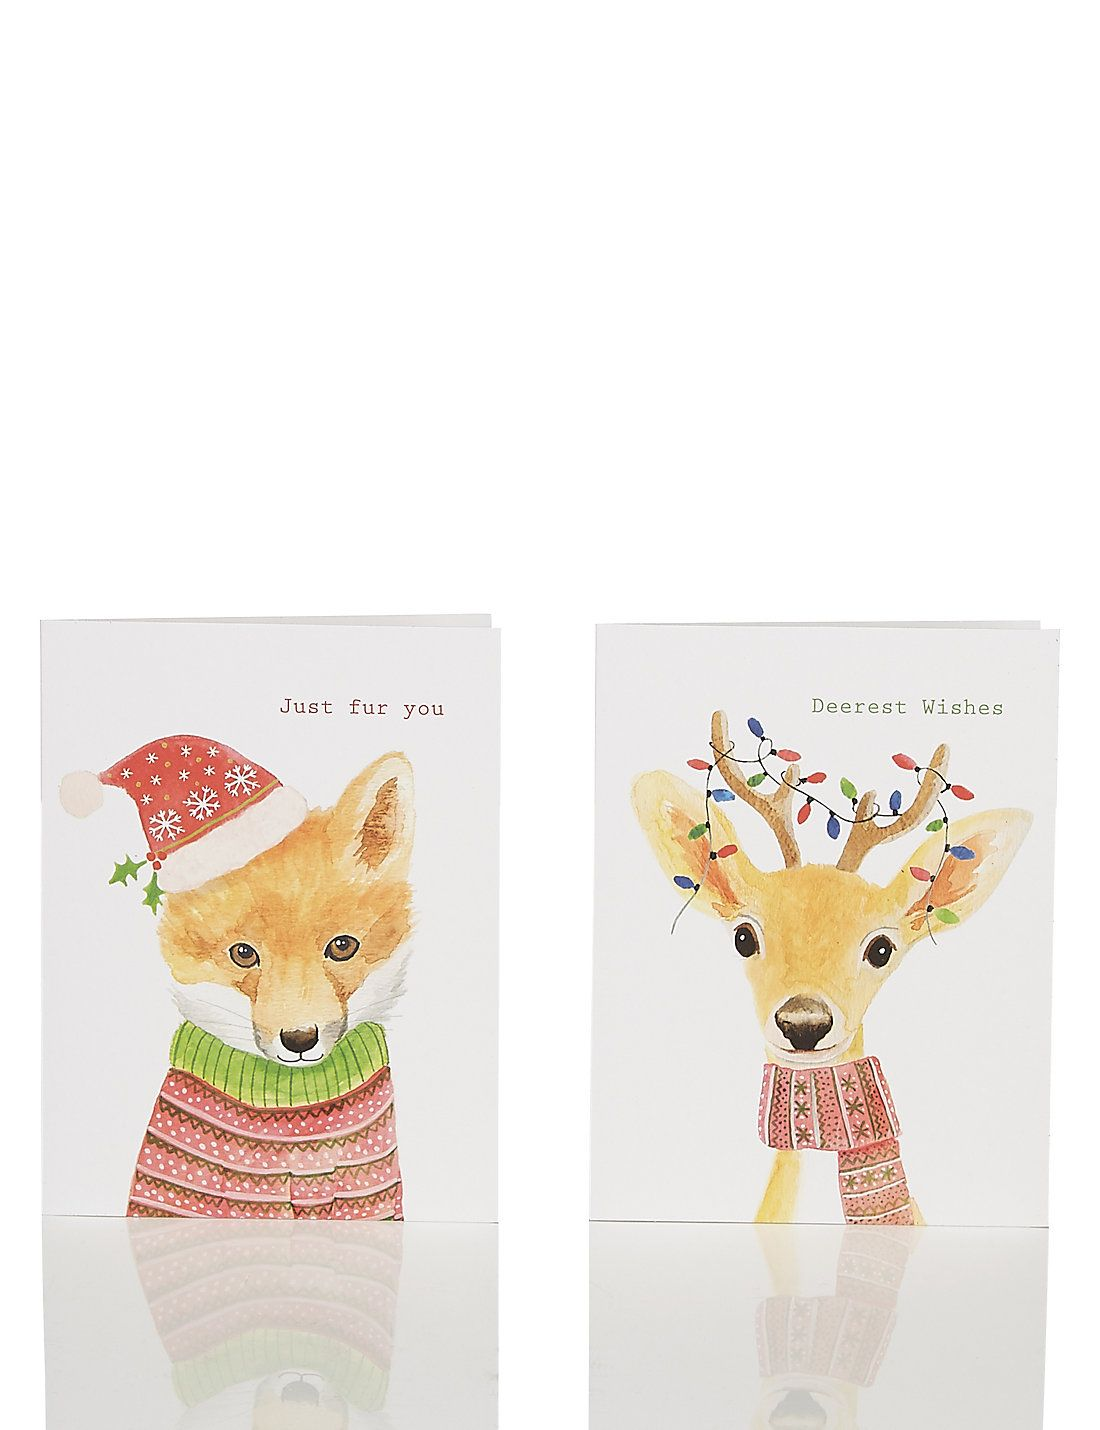 20 cute animals charity christmas multipack cards - Animal Charity Christmas Cards